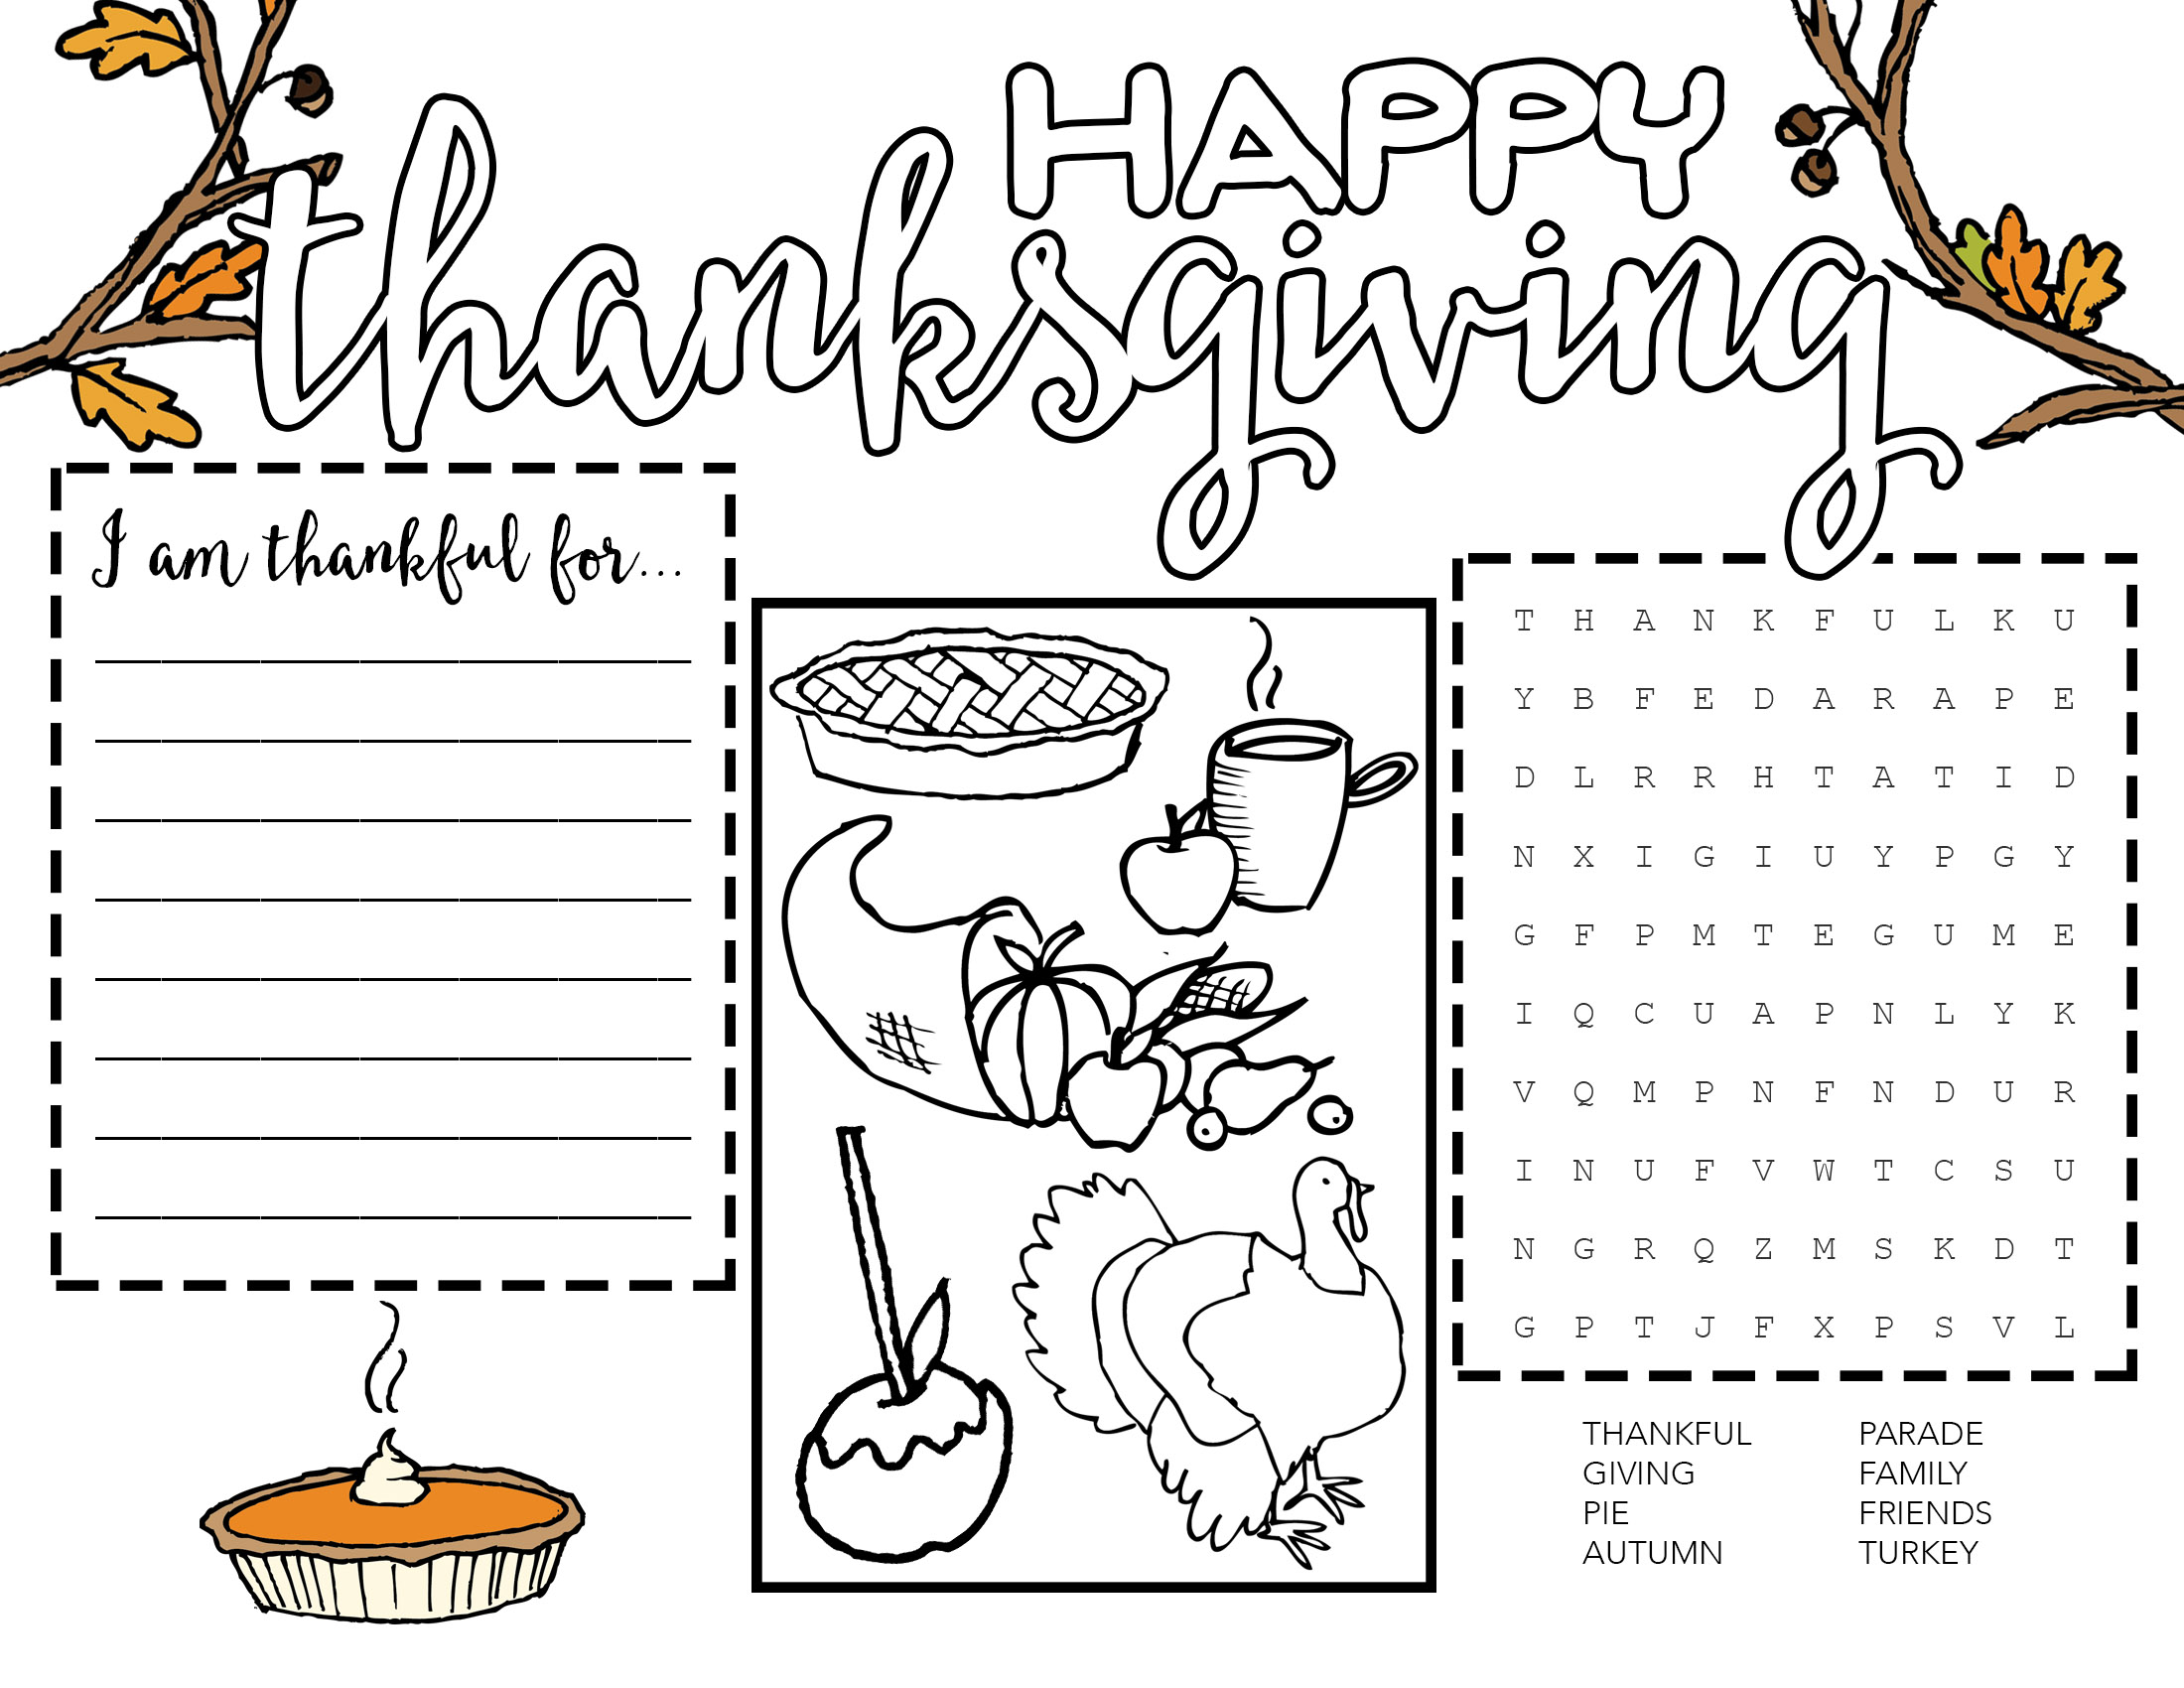 Catholic Worksheet For Thanksgiving